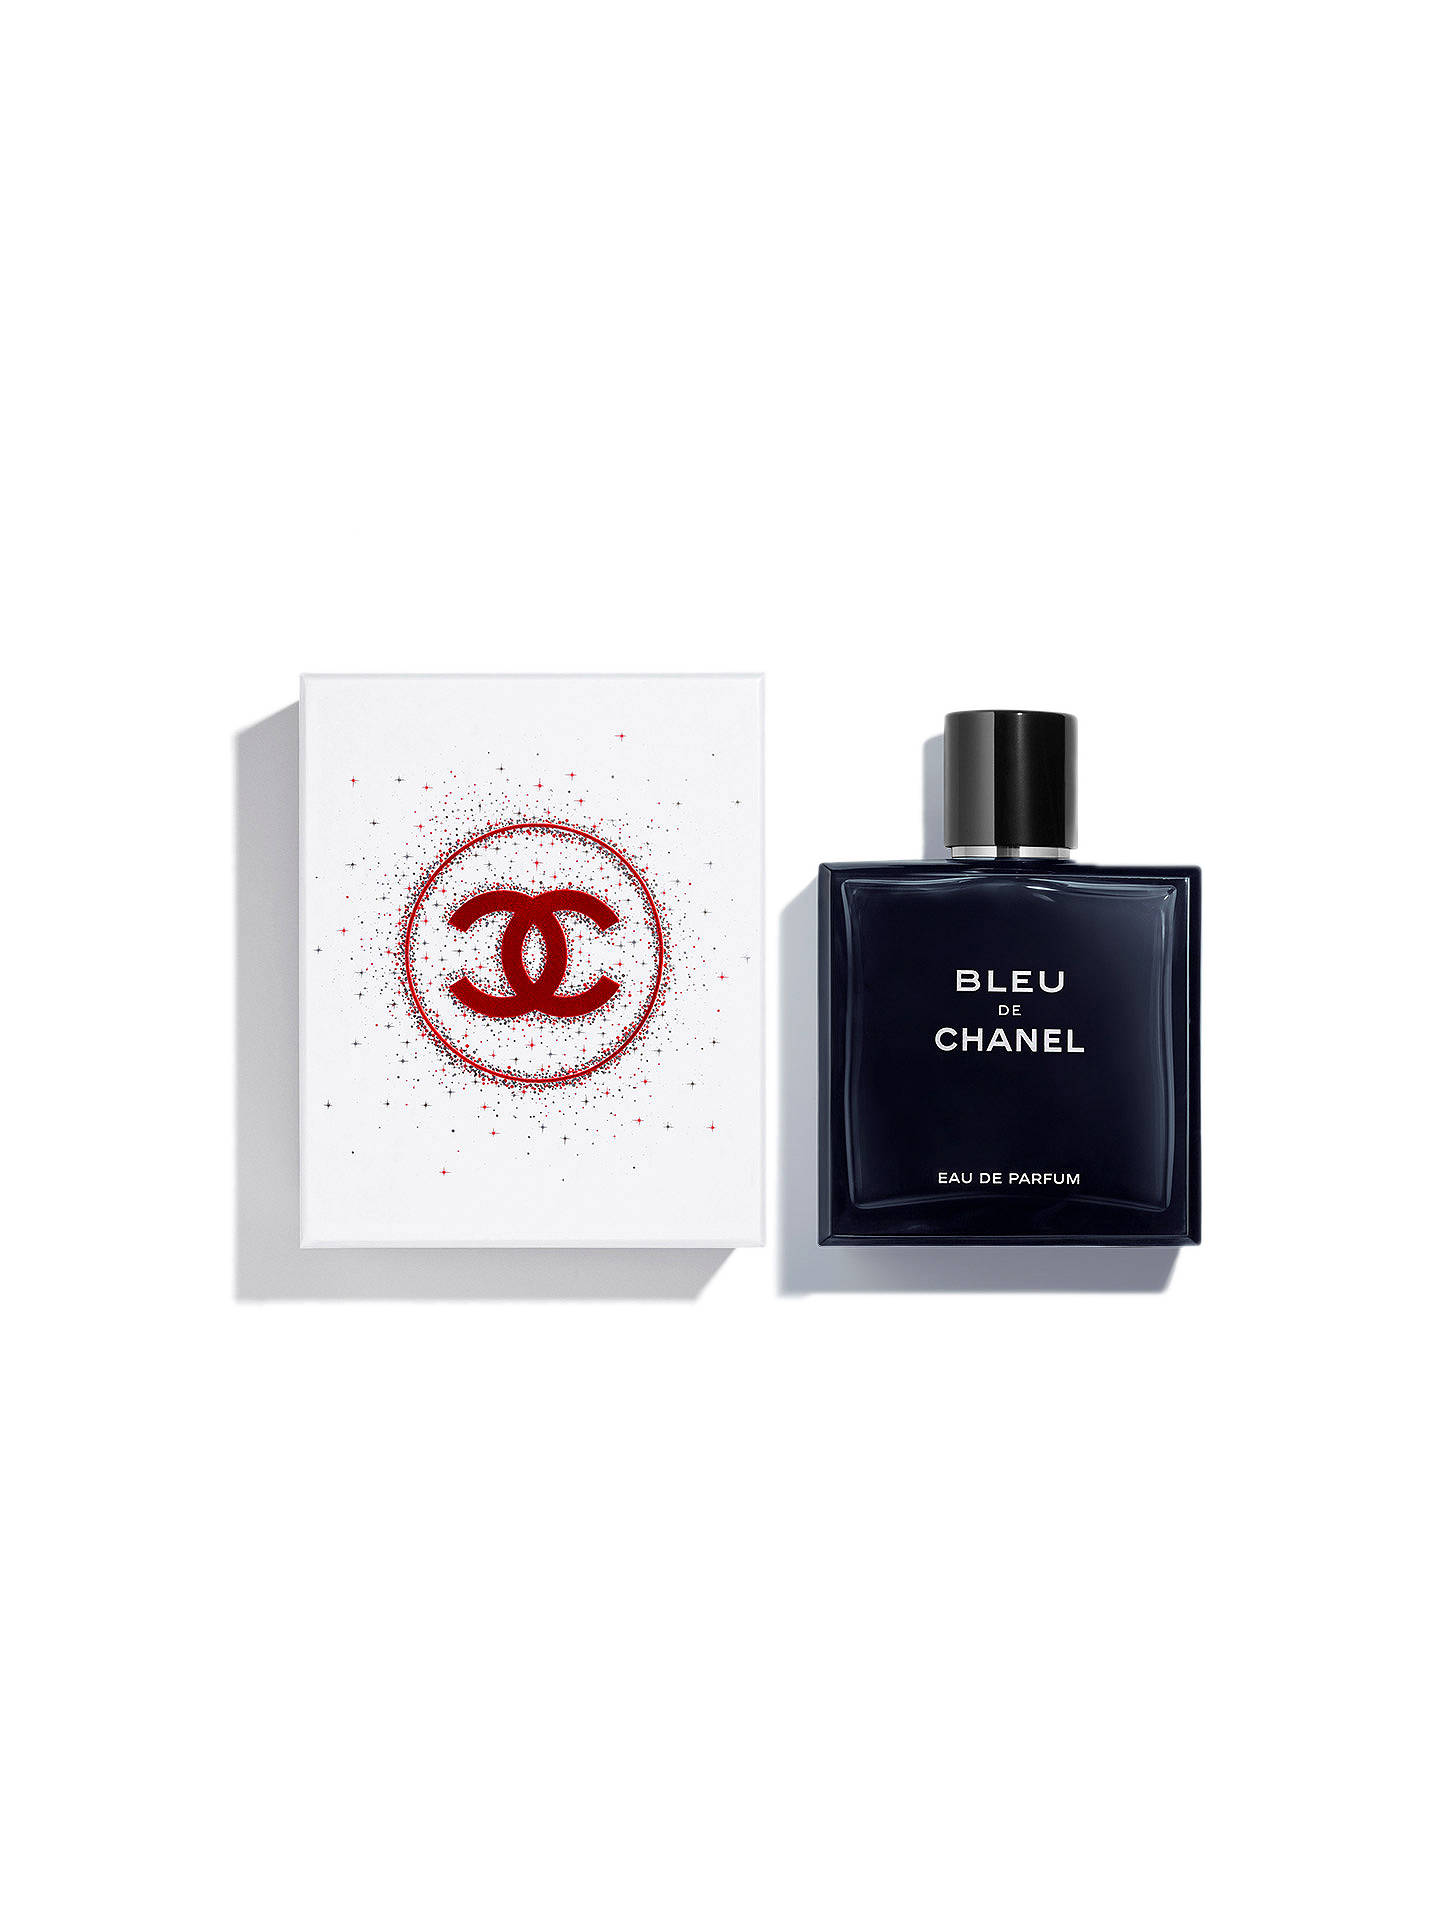 Chanel Bleu De Chanel Eau De Parfum Spray 100ml With Gift Box At